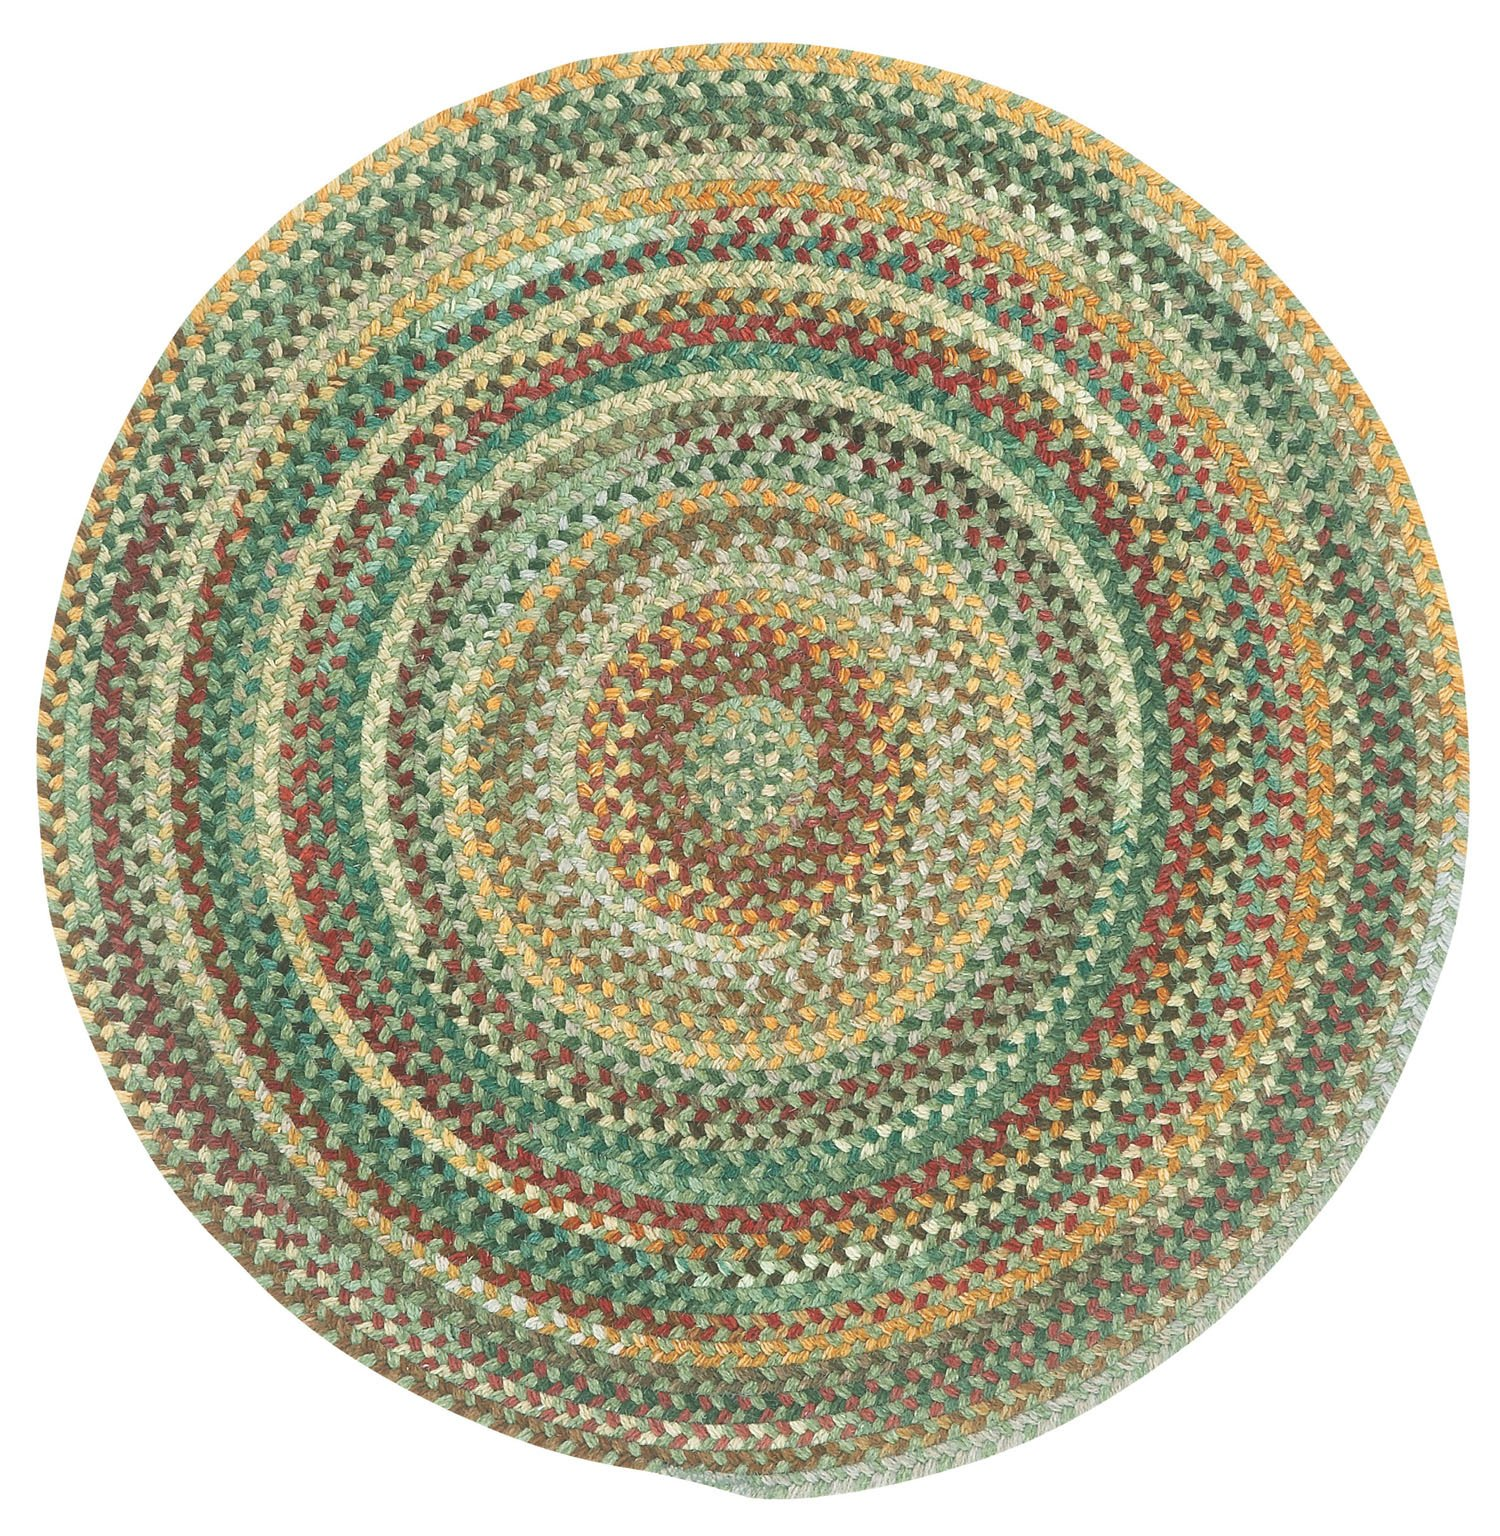 Capel Rugs Sherwood Forest Round Braided Area Rug, 36'', Pine Wood